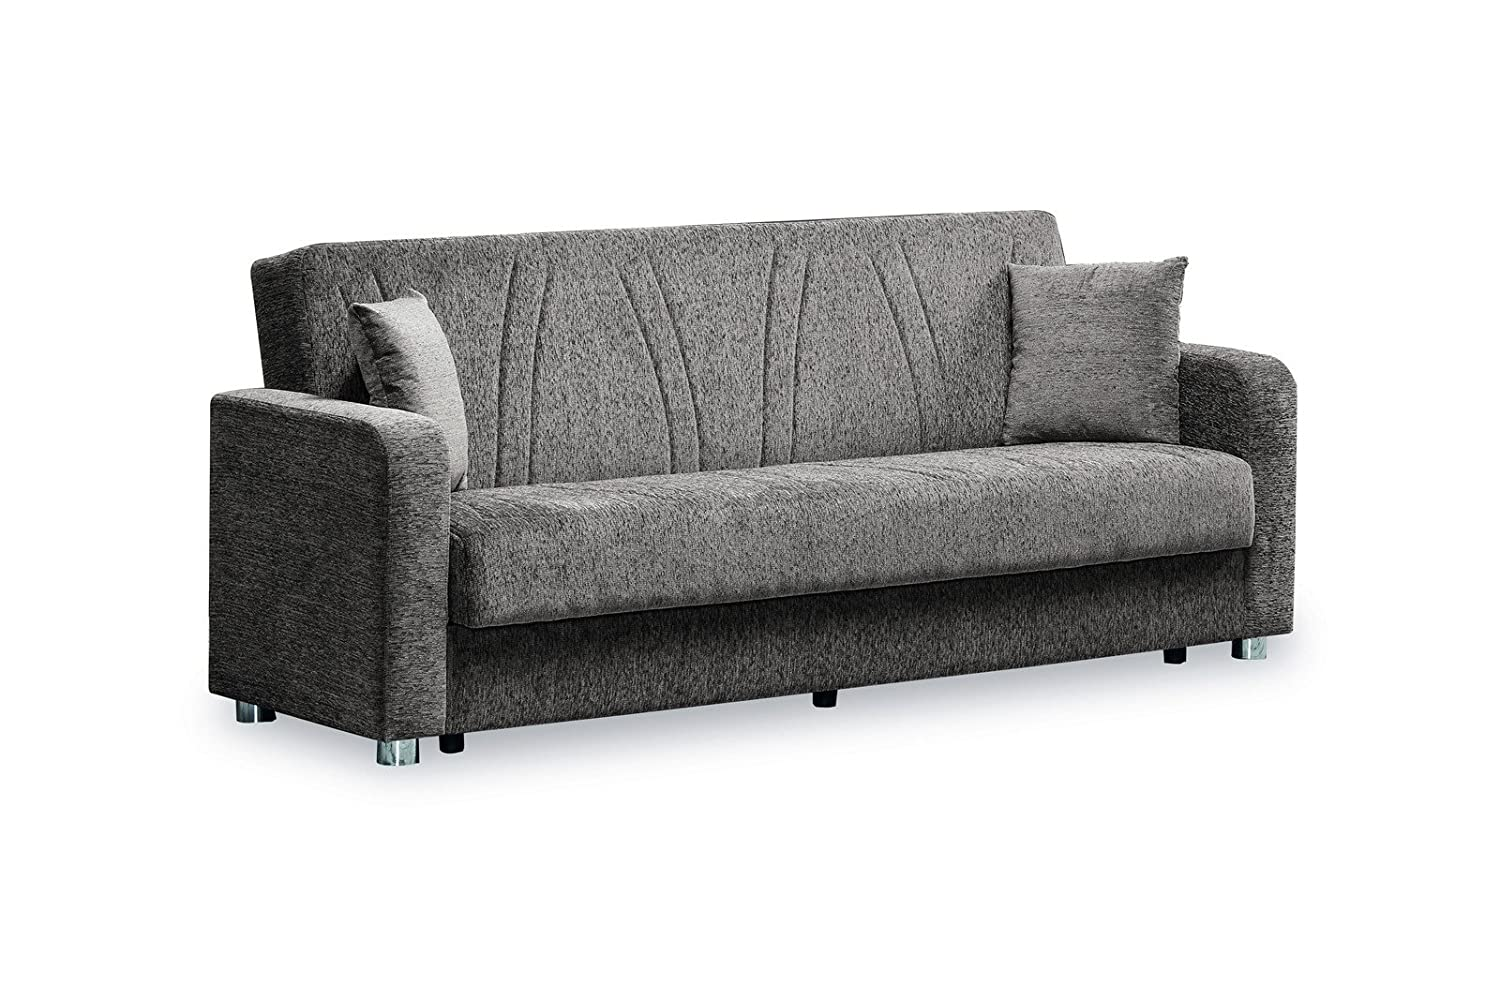 Amazon.com: Casamode Elegance (Joker) Sofa Bed Beige ...